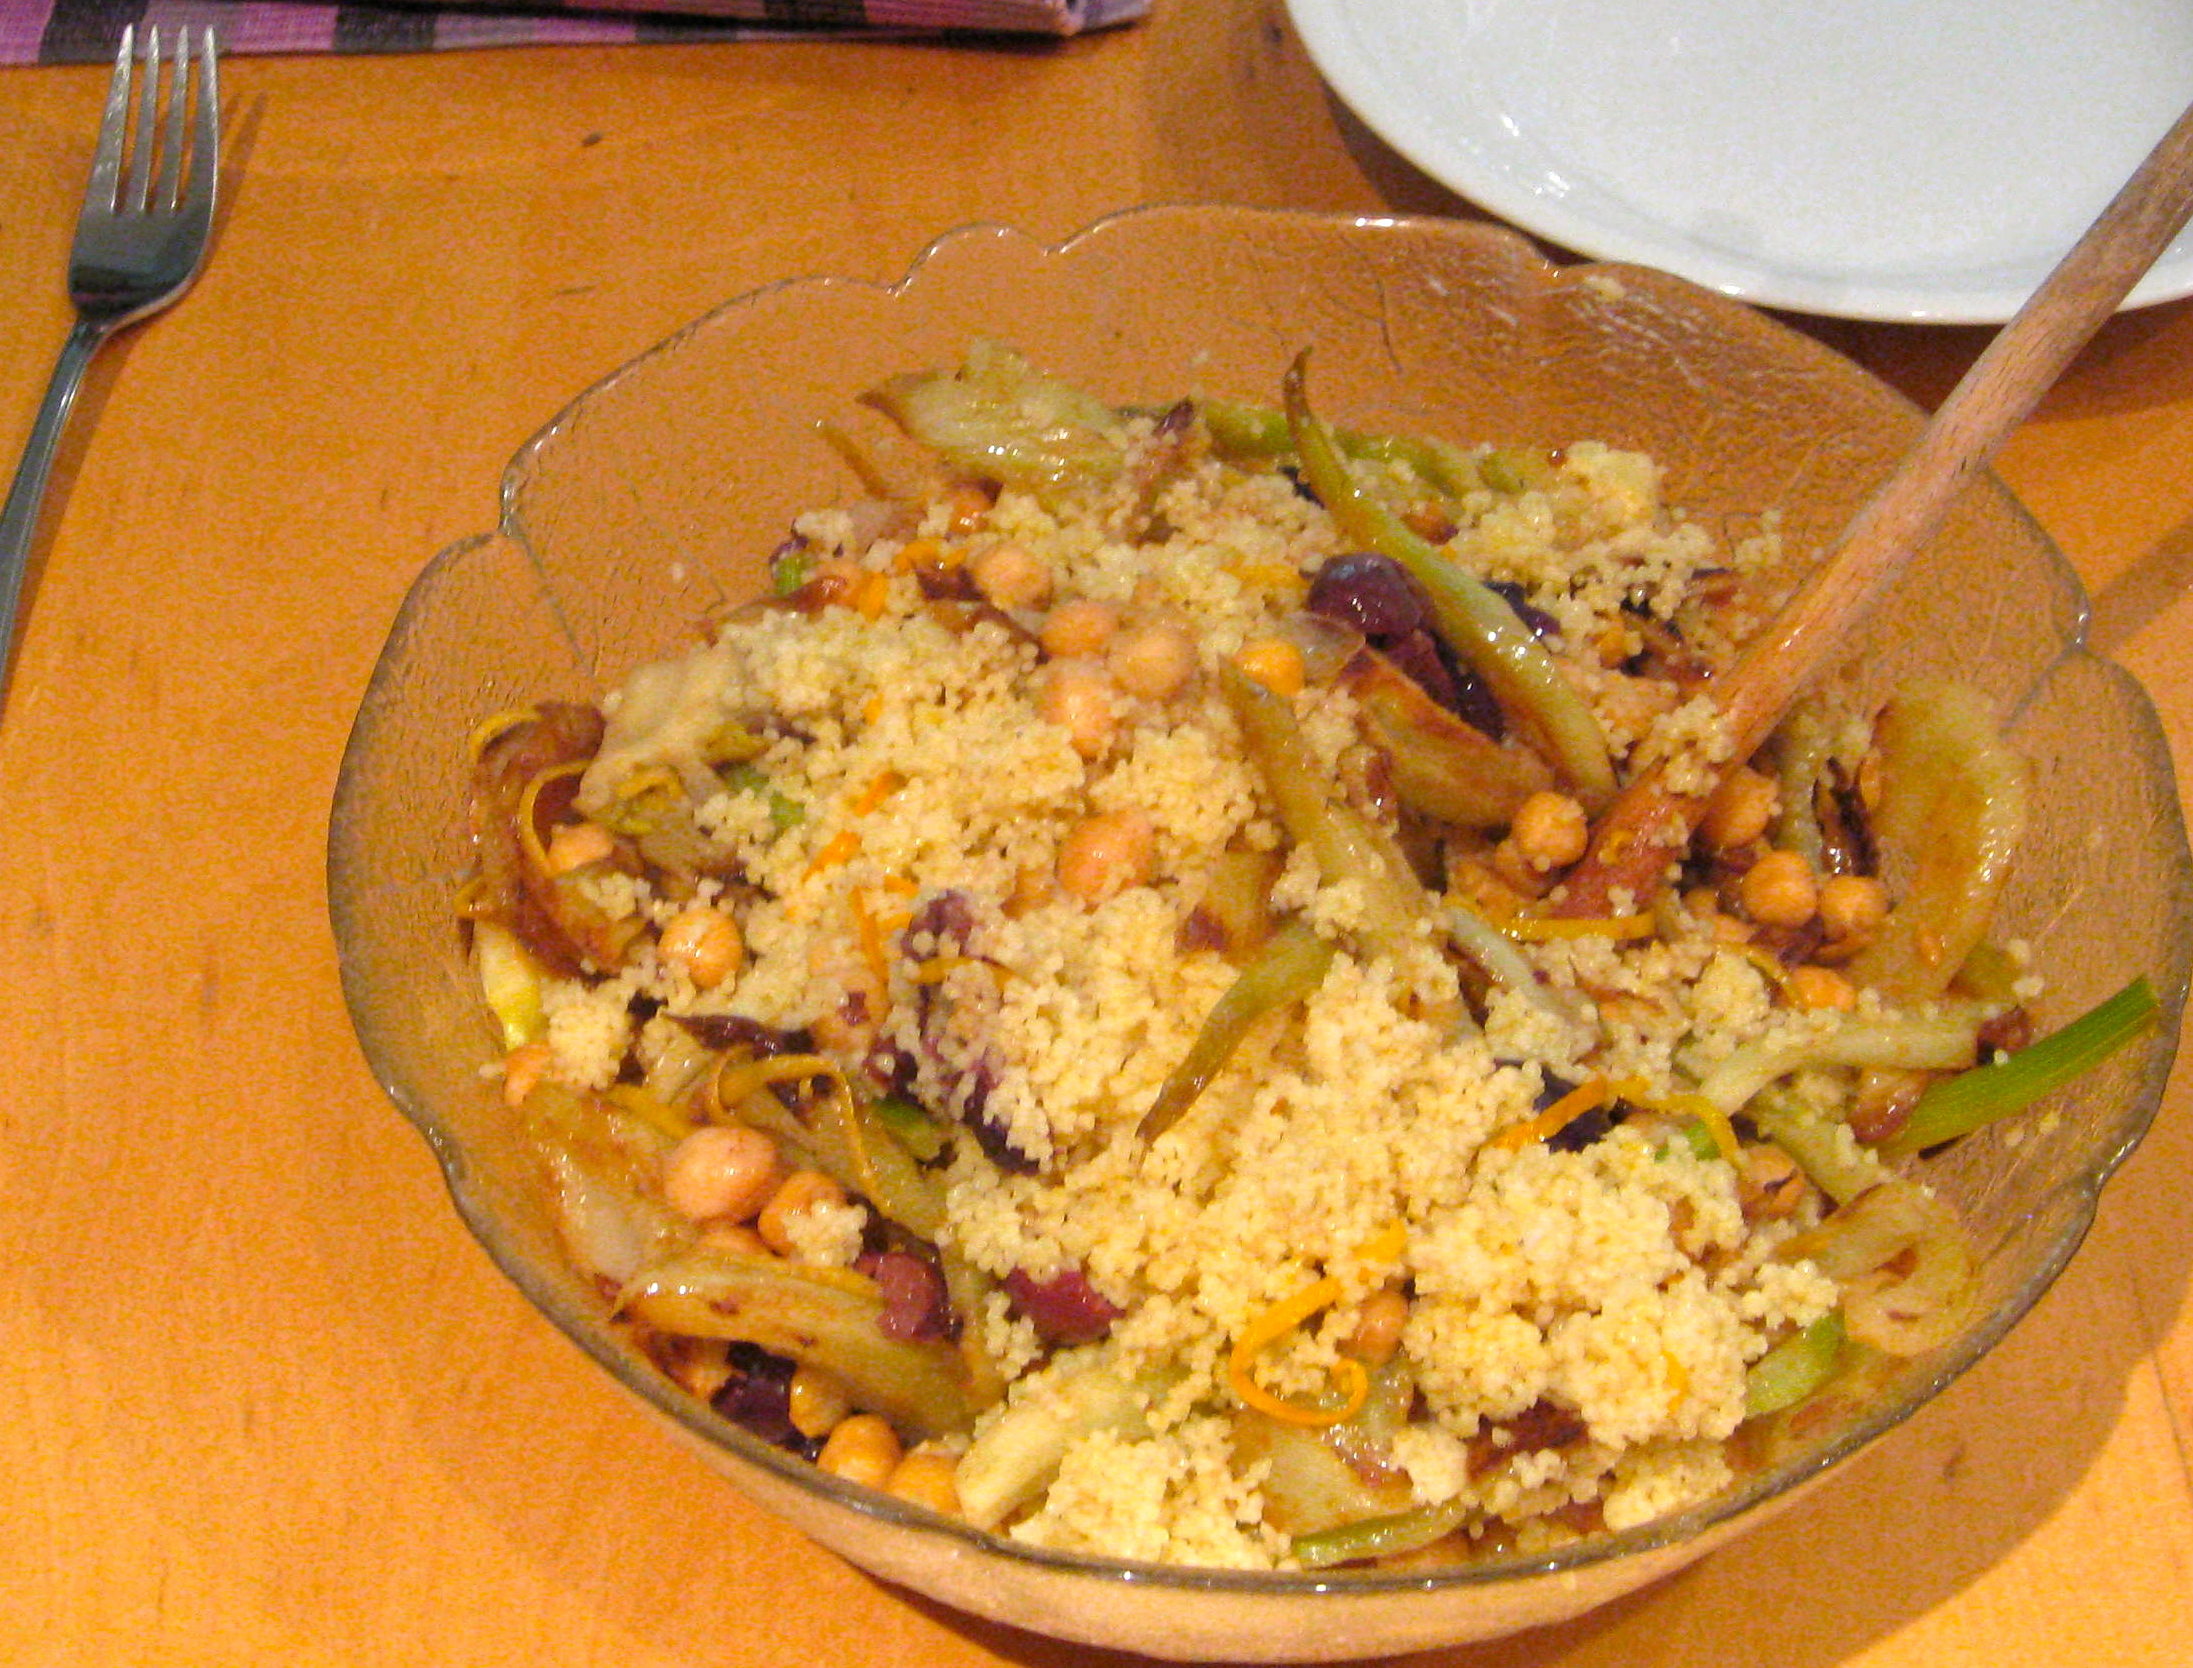 Recipe: Citrus Couscous with Caramelized Fennel & Chickpeas